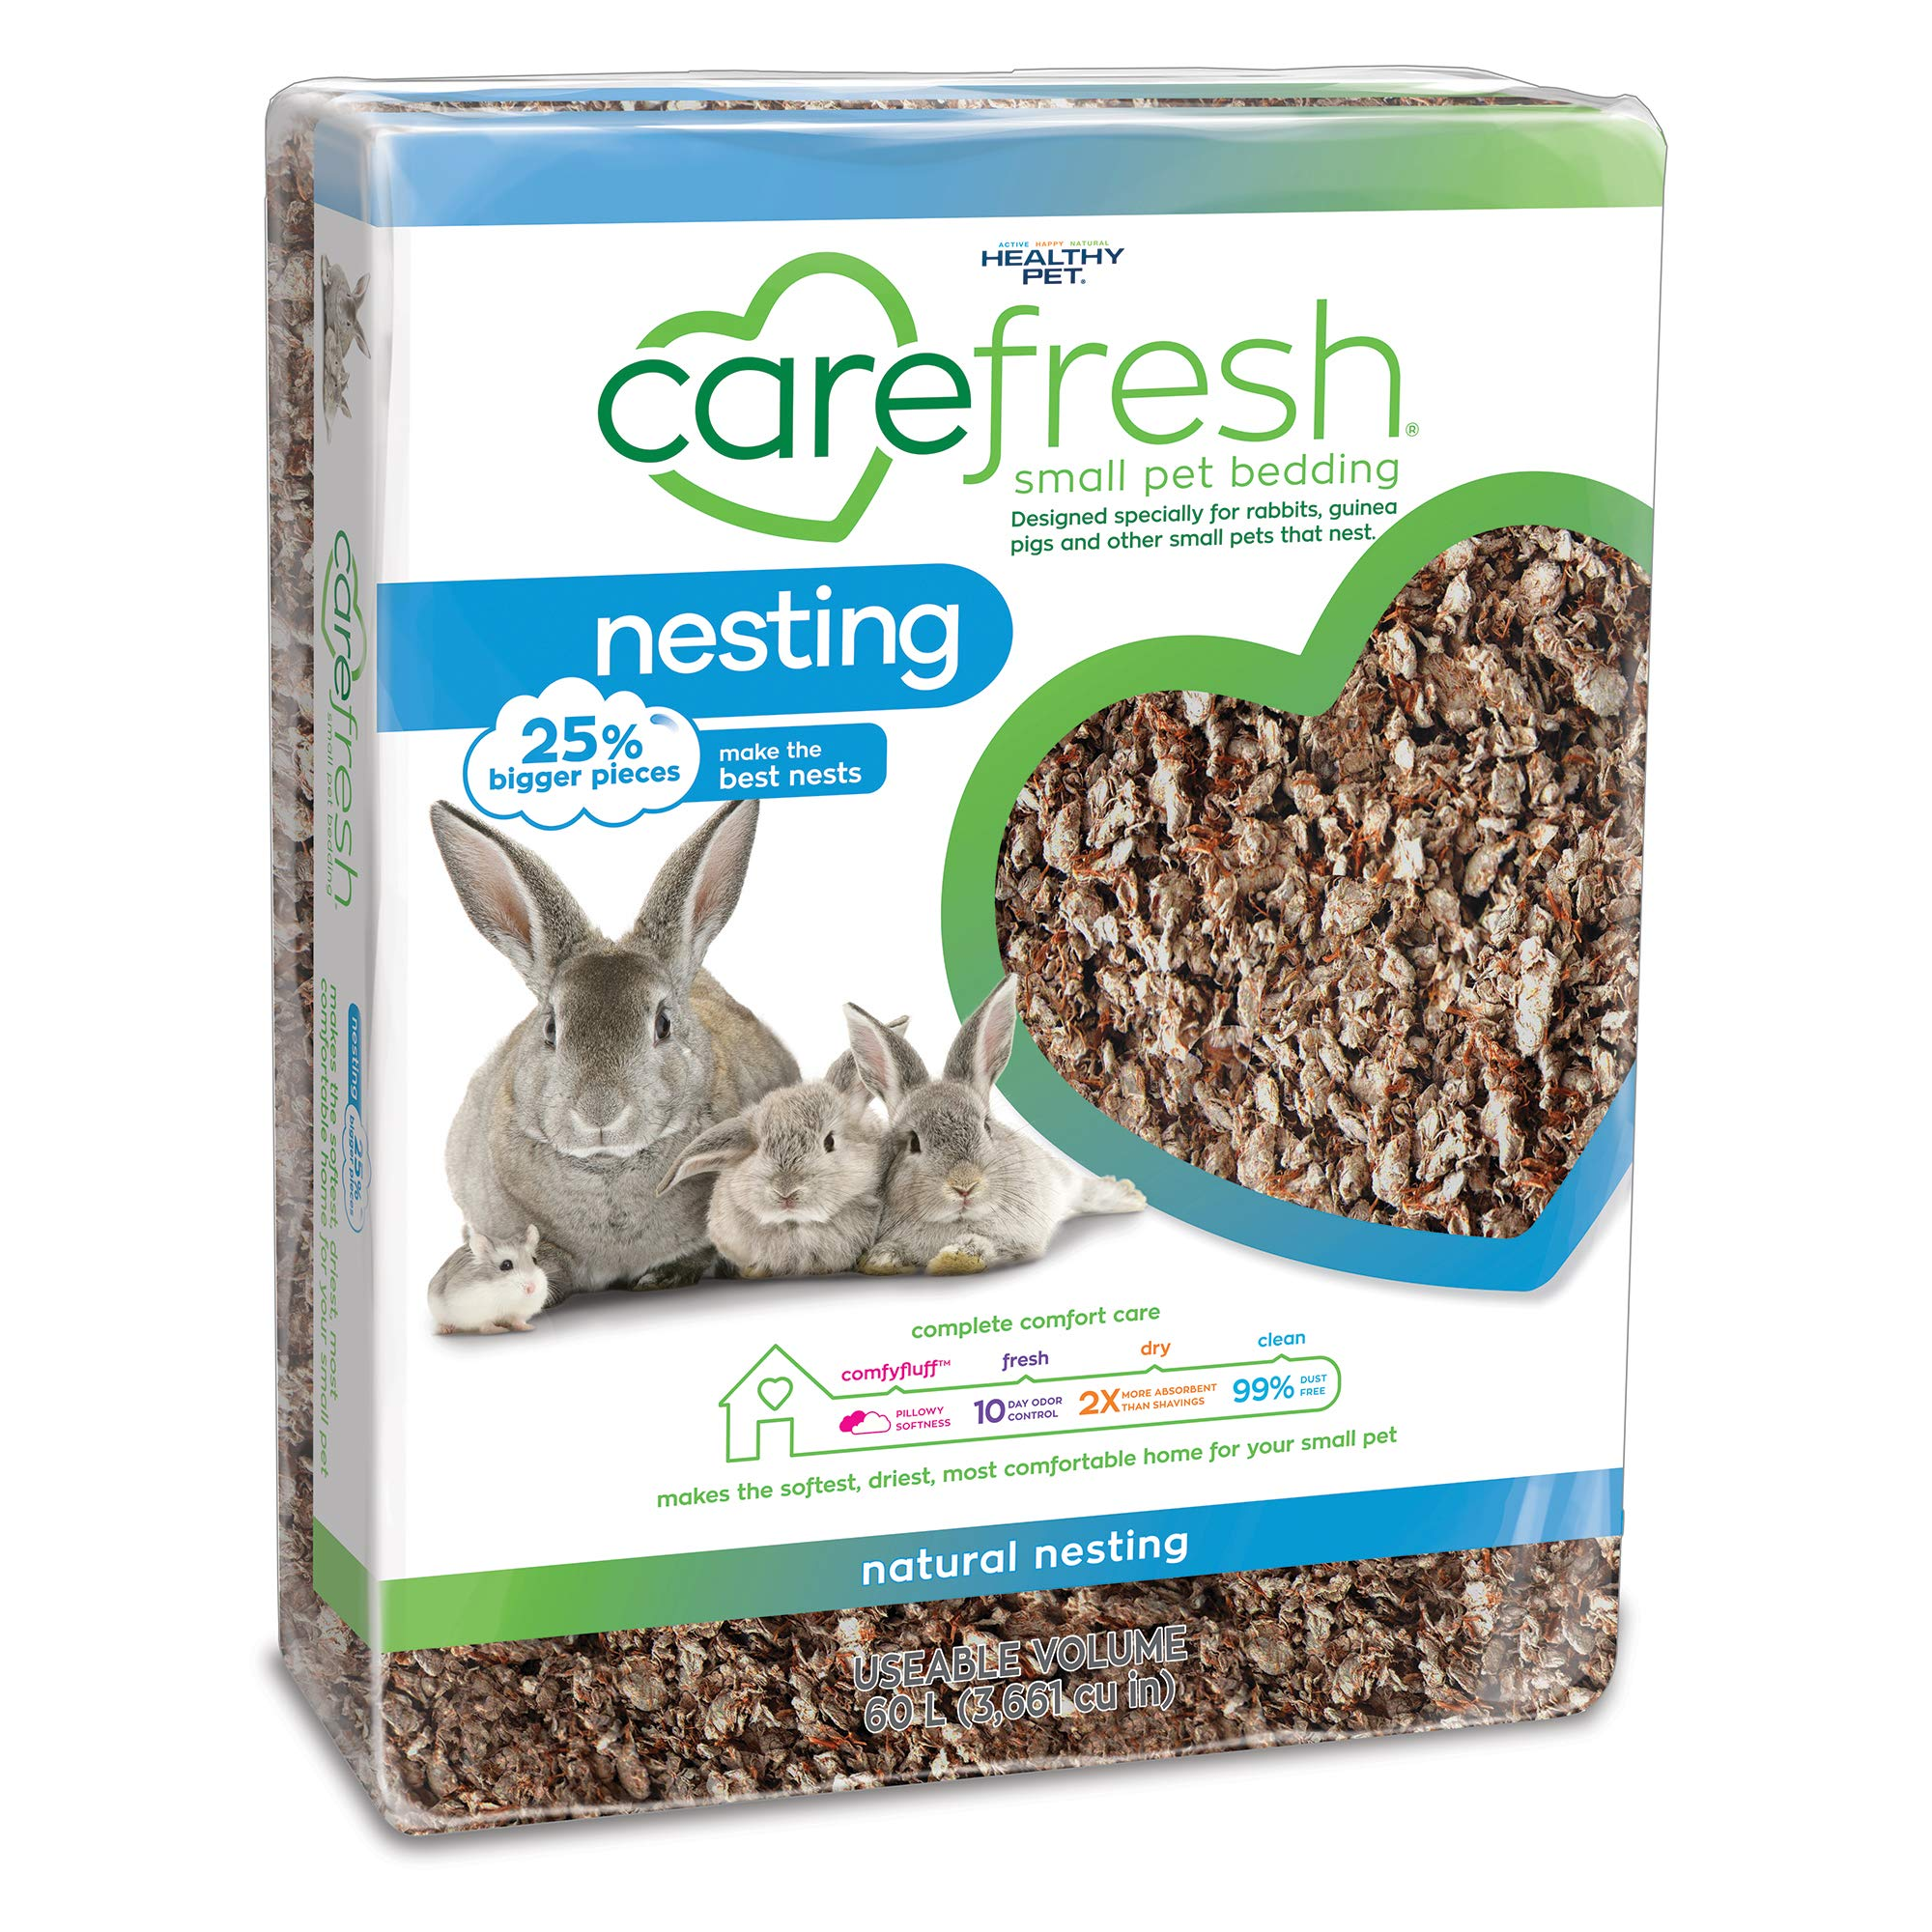 Carefresh Natural Nesting Small pet Bedding, 60L (Pack May Vary) by Carefresh